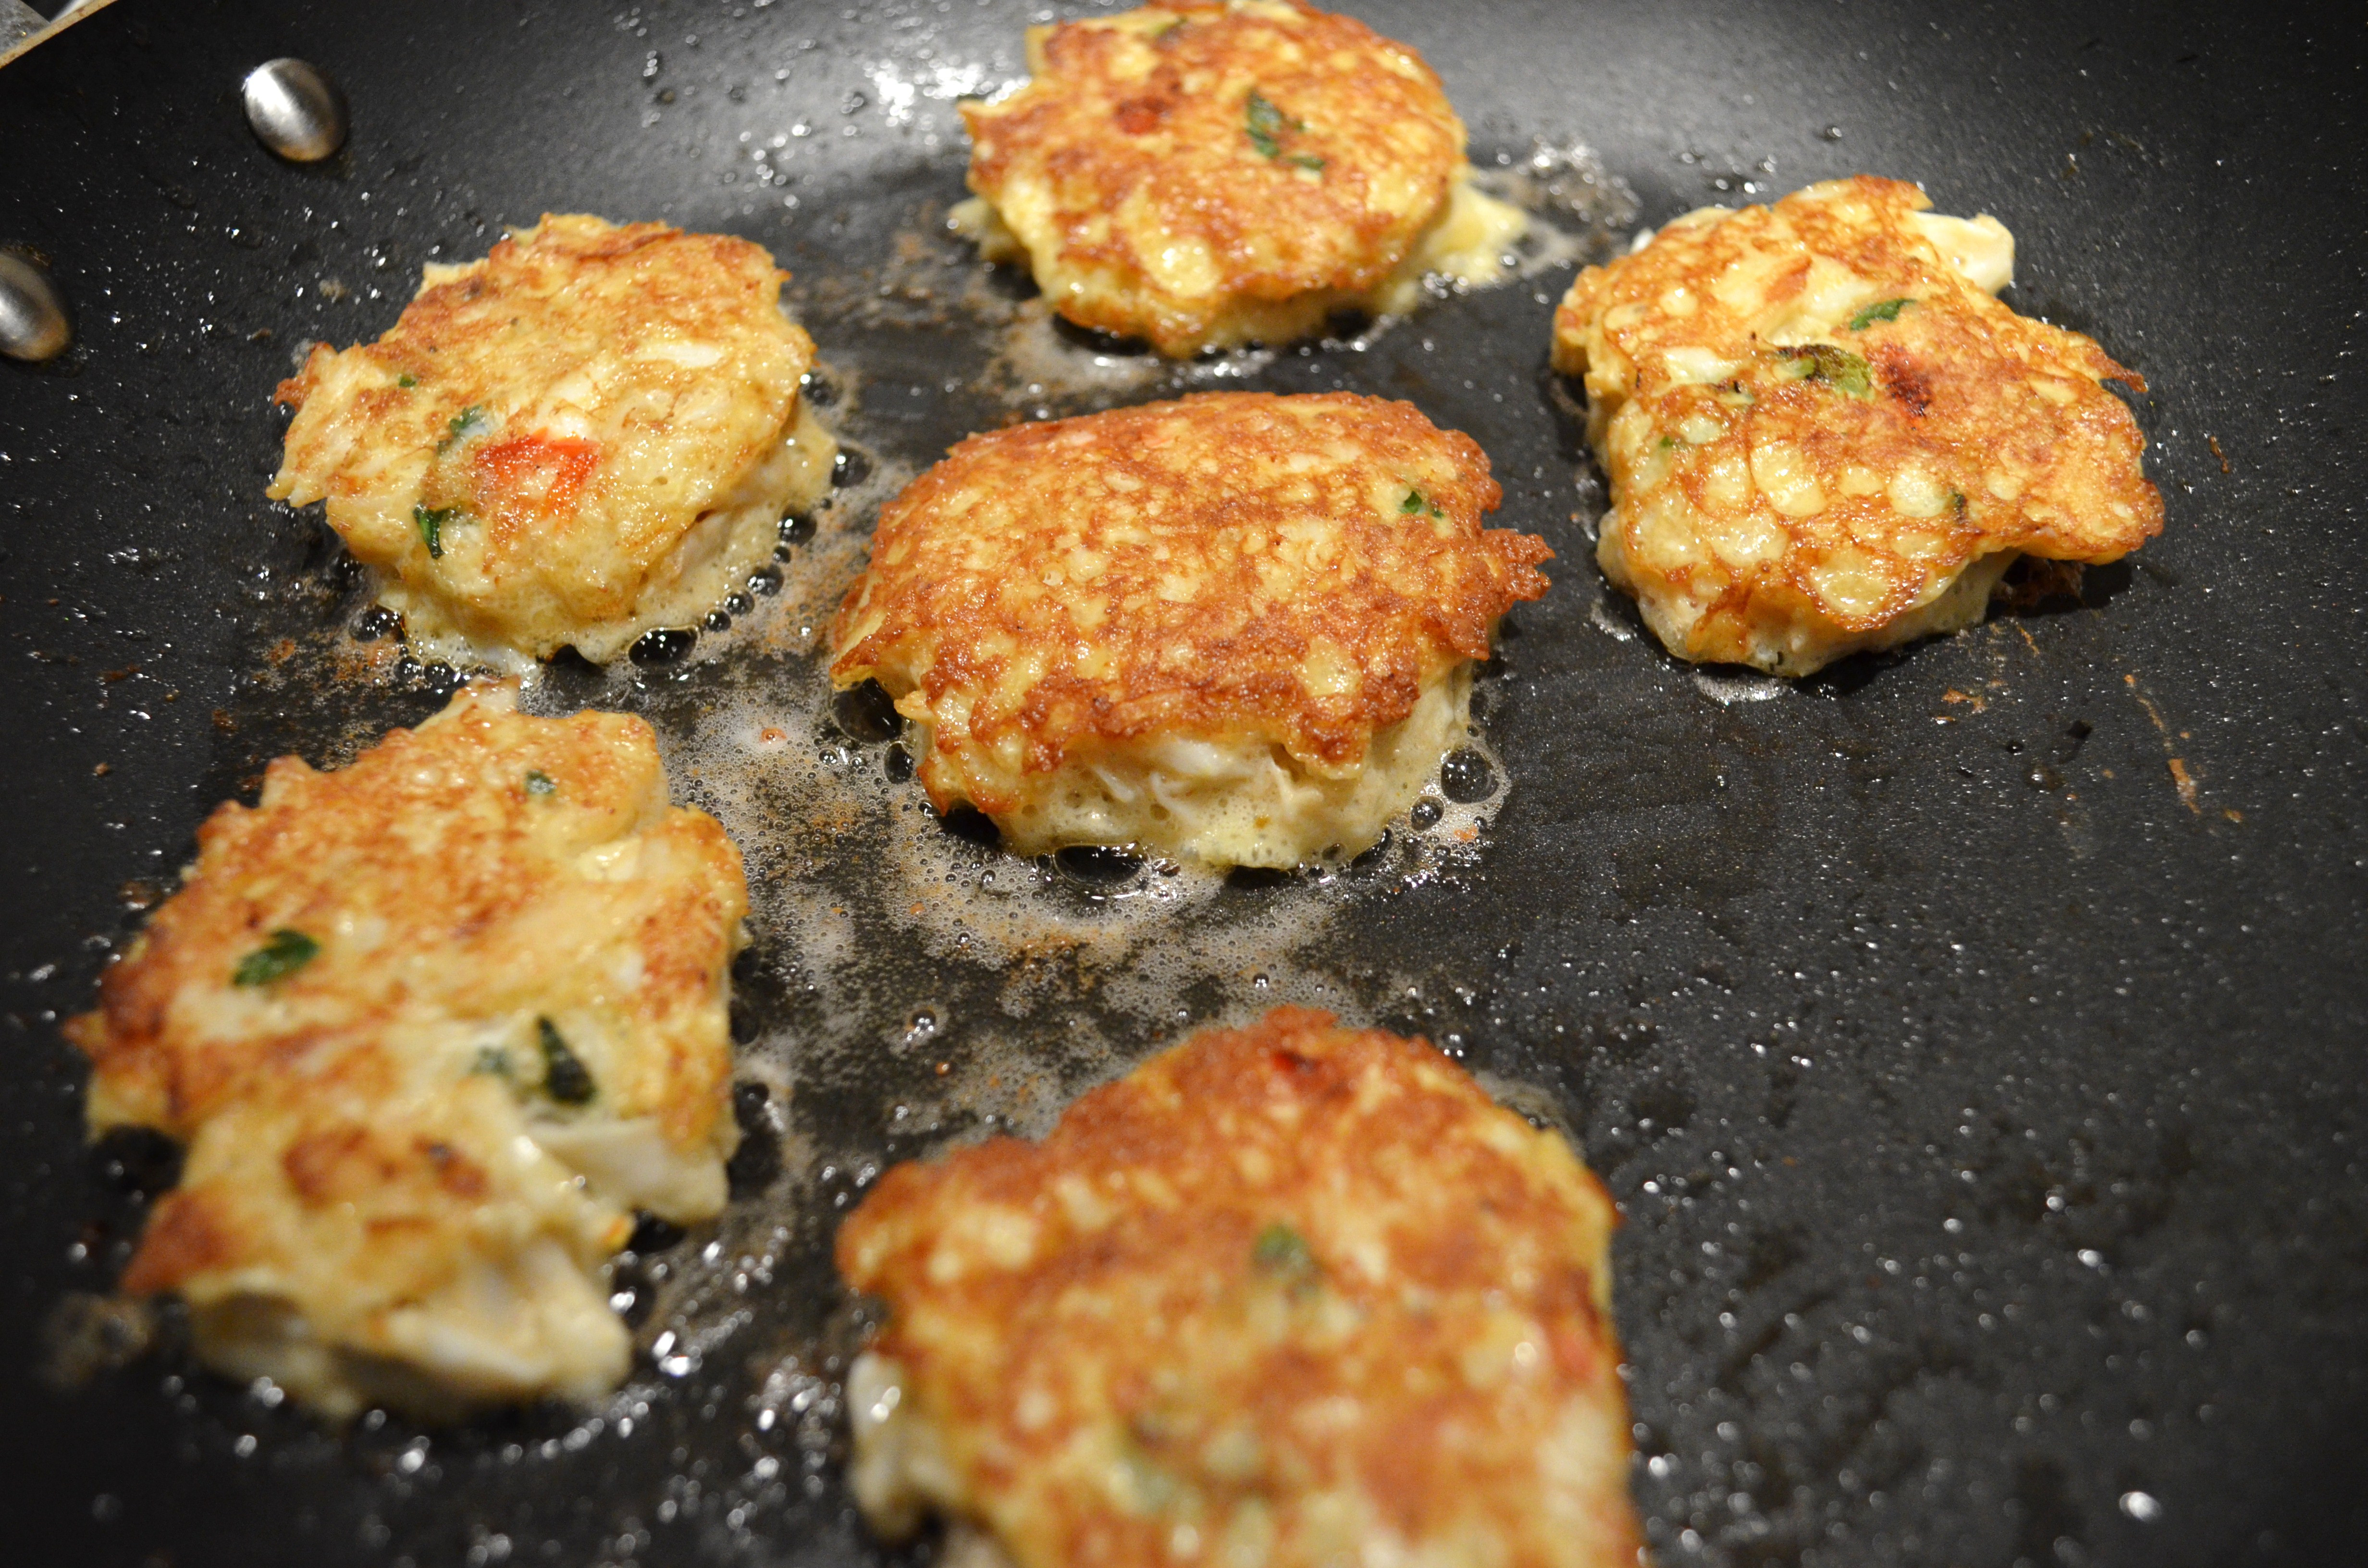 Low Fat Crab Cakes  Low Carb Crab Cakes with Mustard Sauce • Domestic Superhero